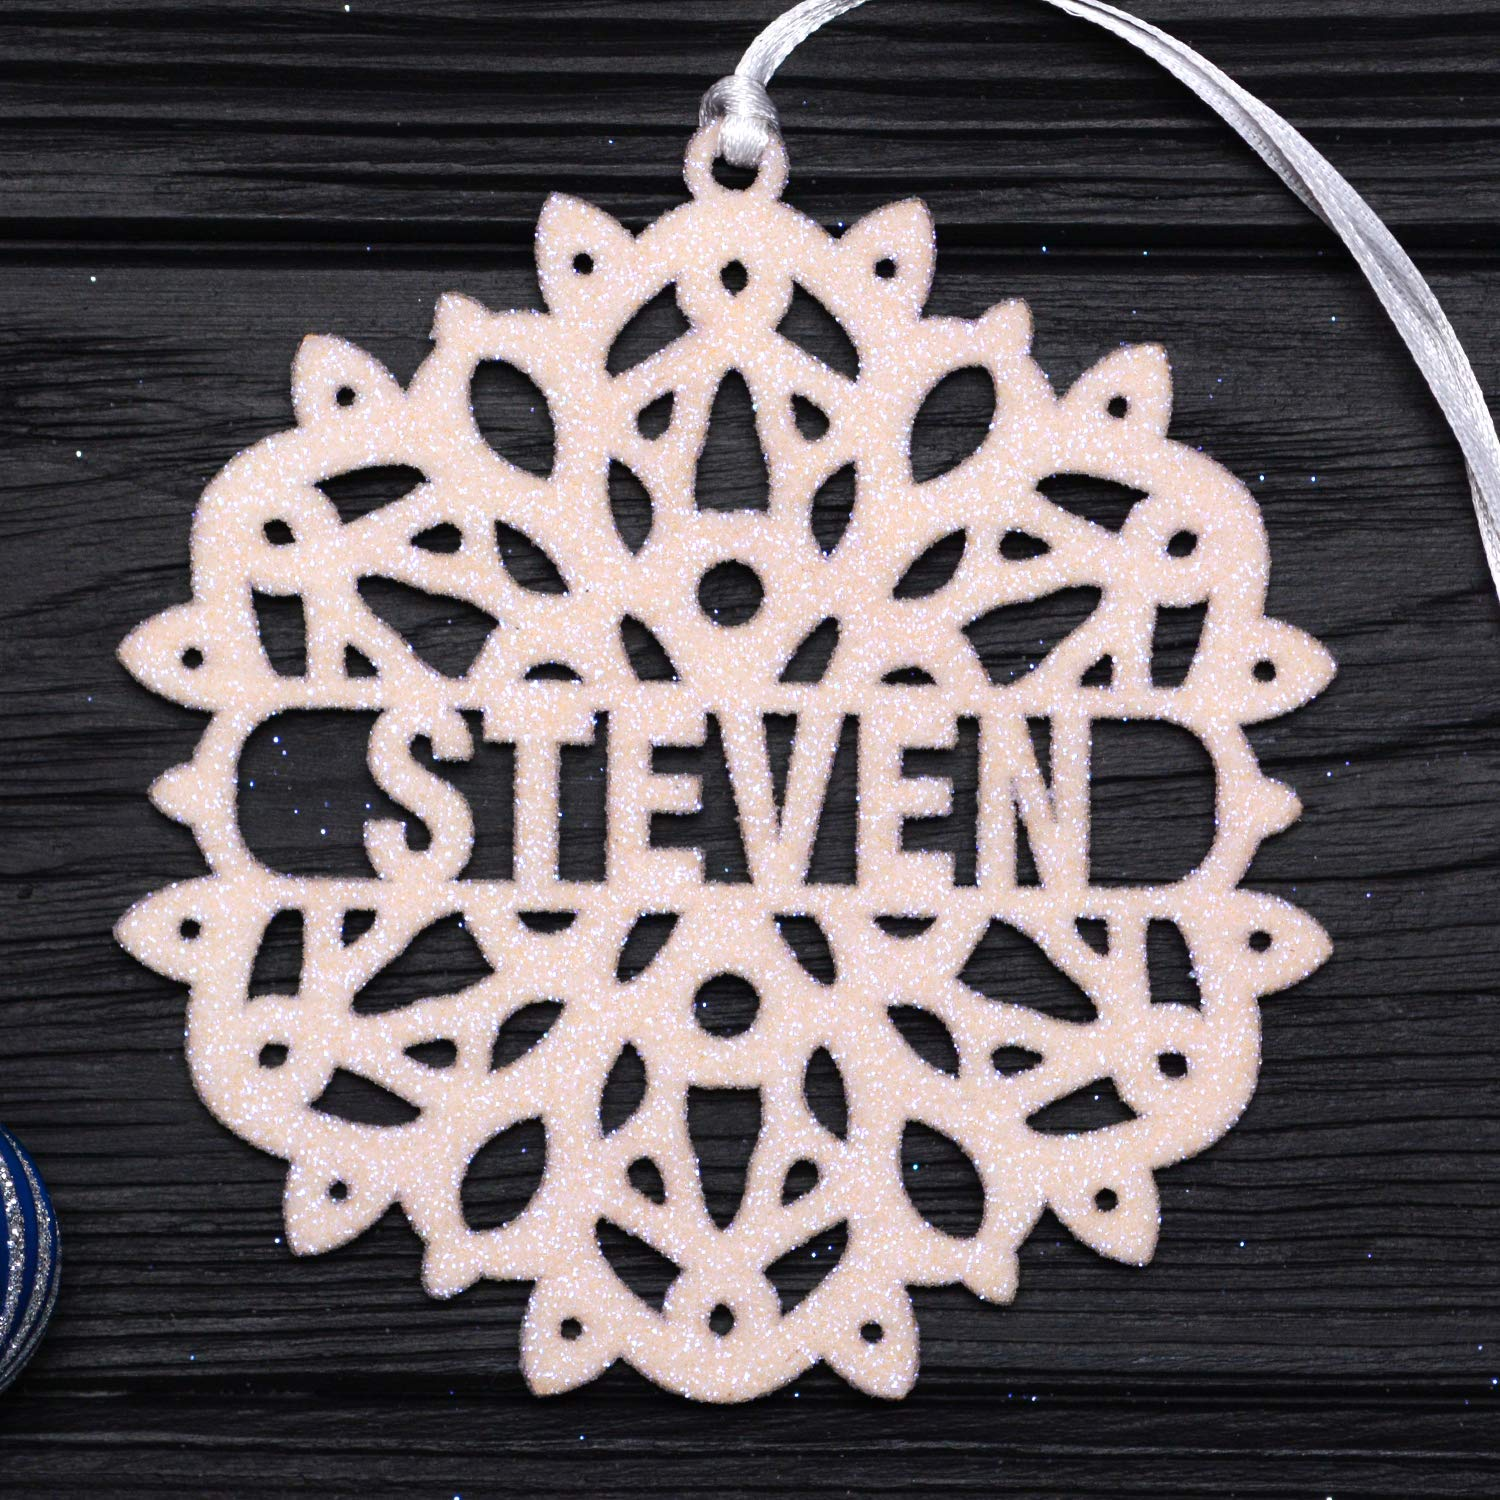 Personalized Christmas Snowflake/White Glitter Snowflake, Wooden Snowflake Ornament, Christmas Decorations, Holiday Decor, Xmas Gifts